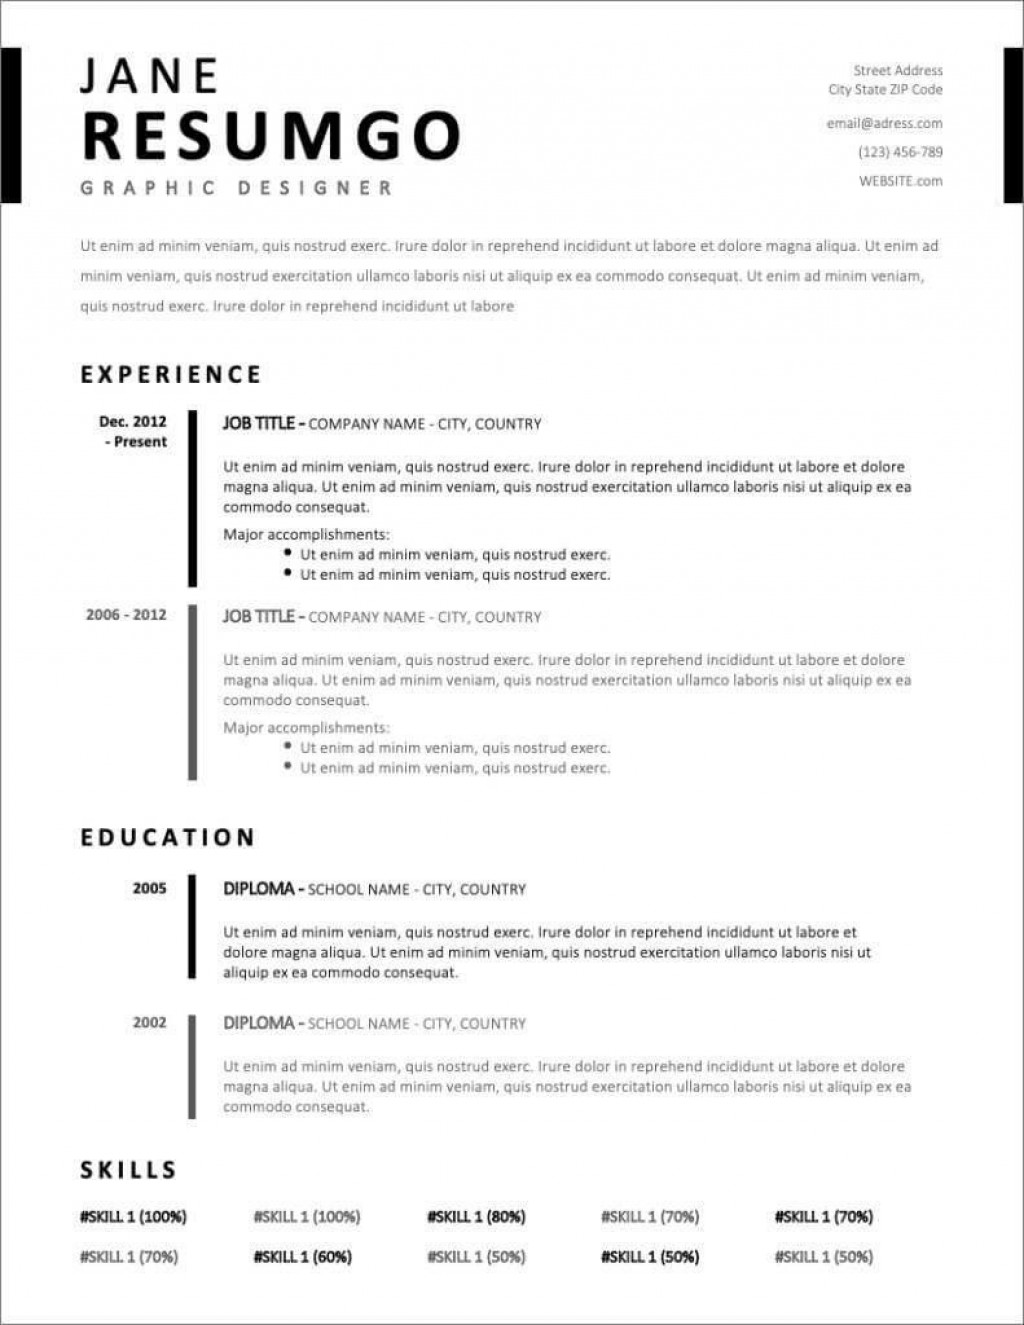 007 Shocking Create A Resume Template Free High Definition  Your Own WritingLarge